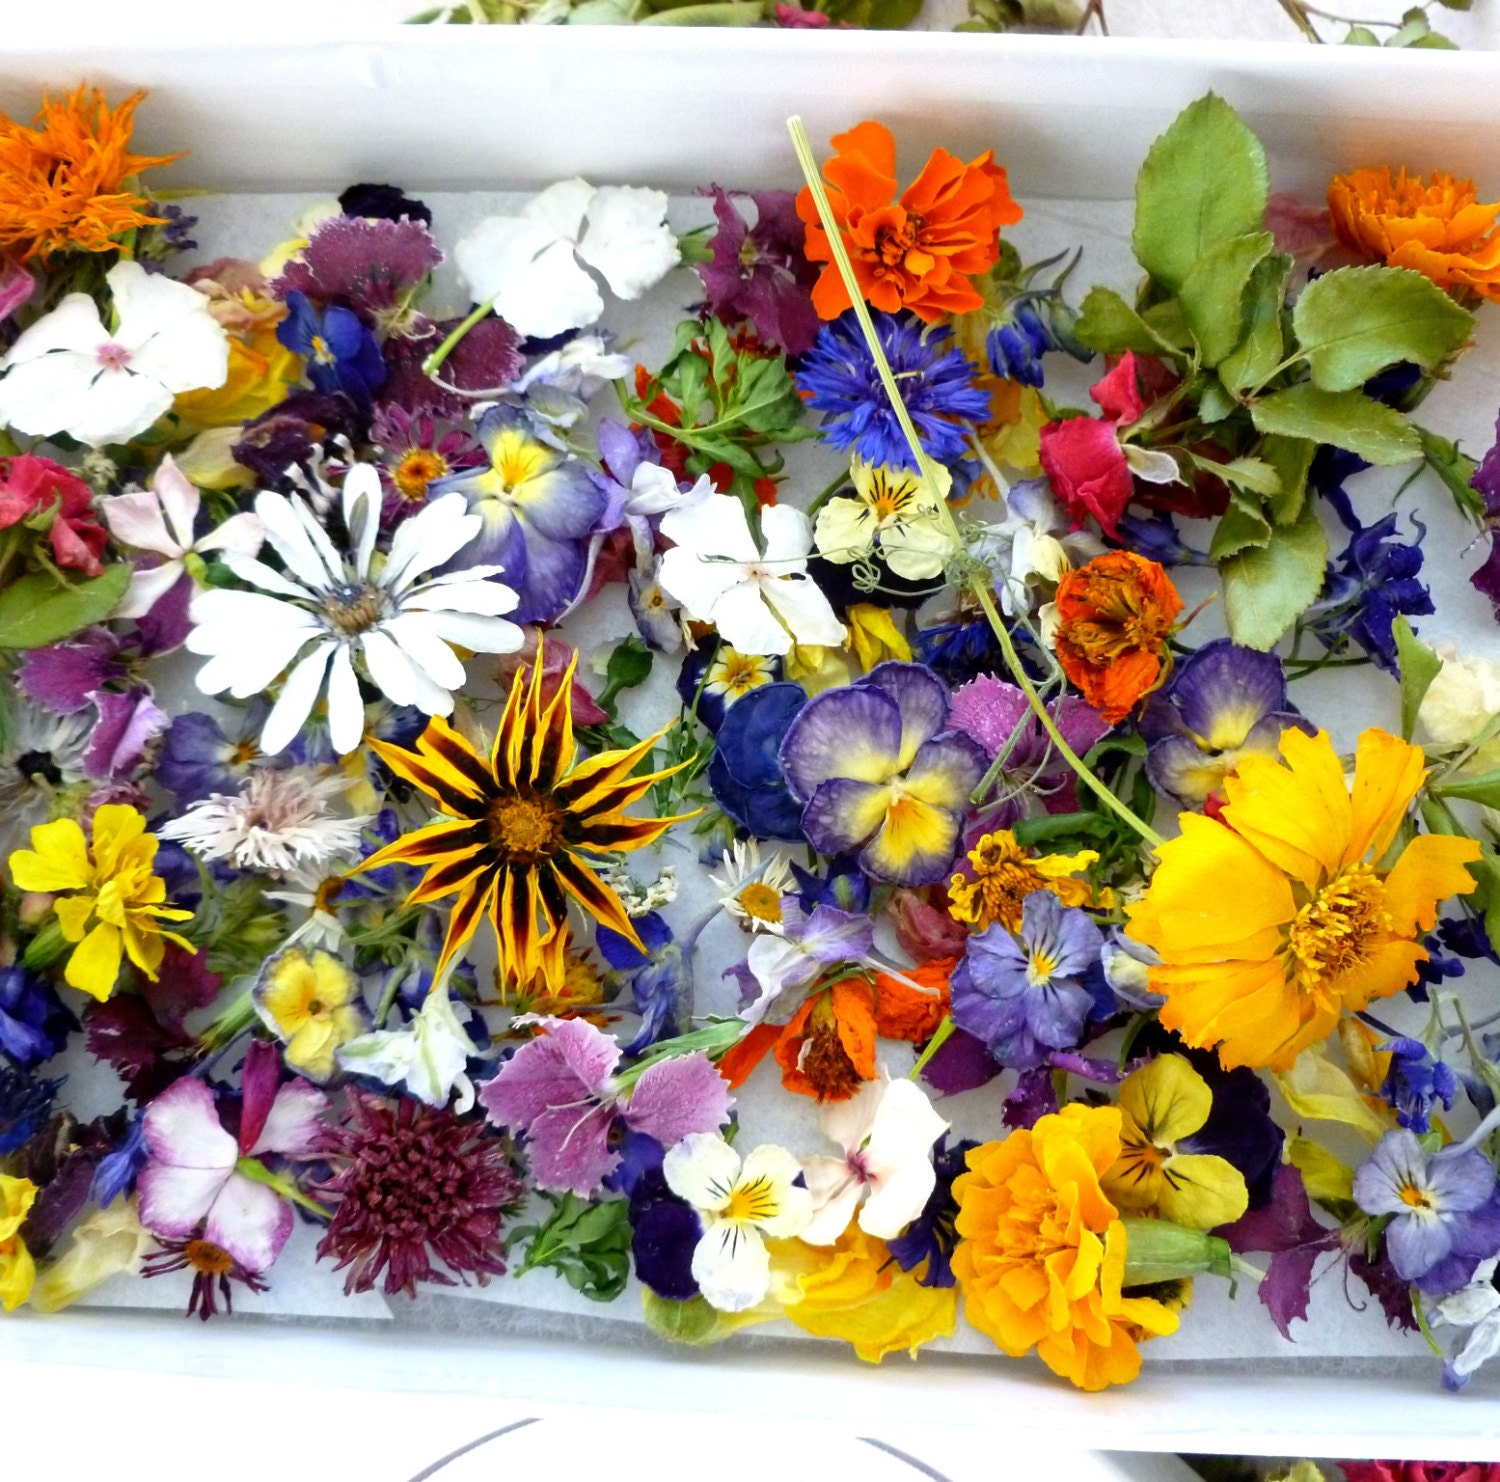 Dry wedding flowers craft supply gift box centerpiece for Dried flowers craft supplies